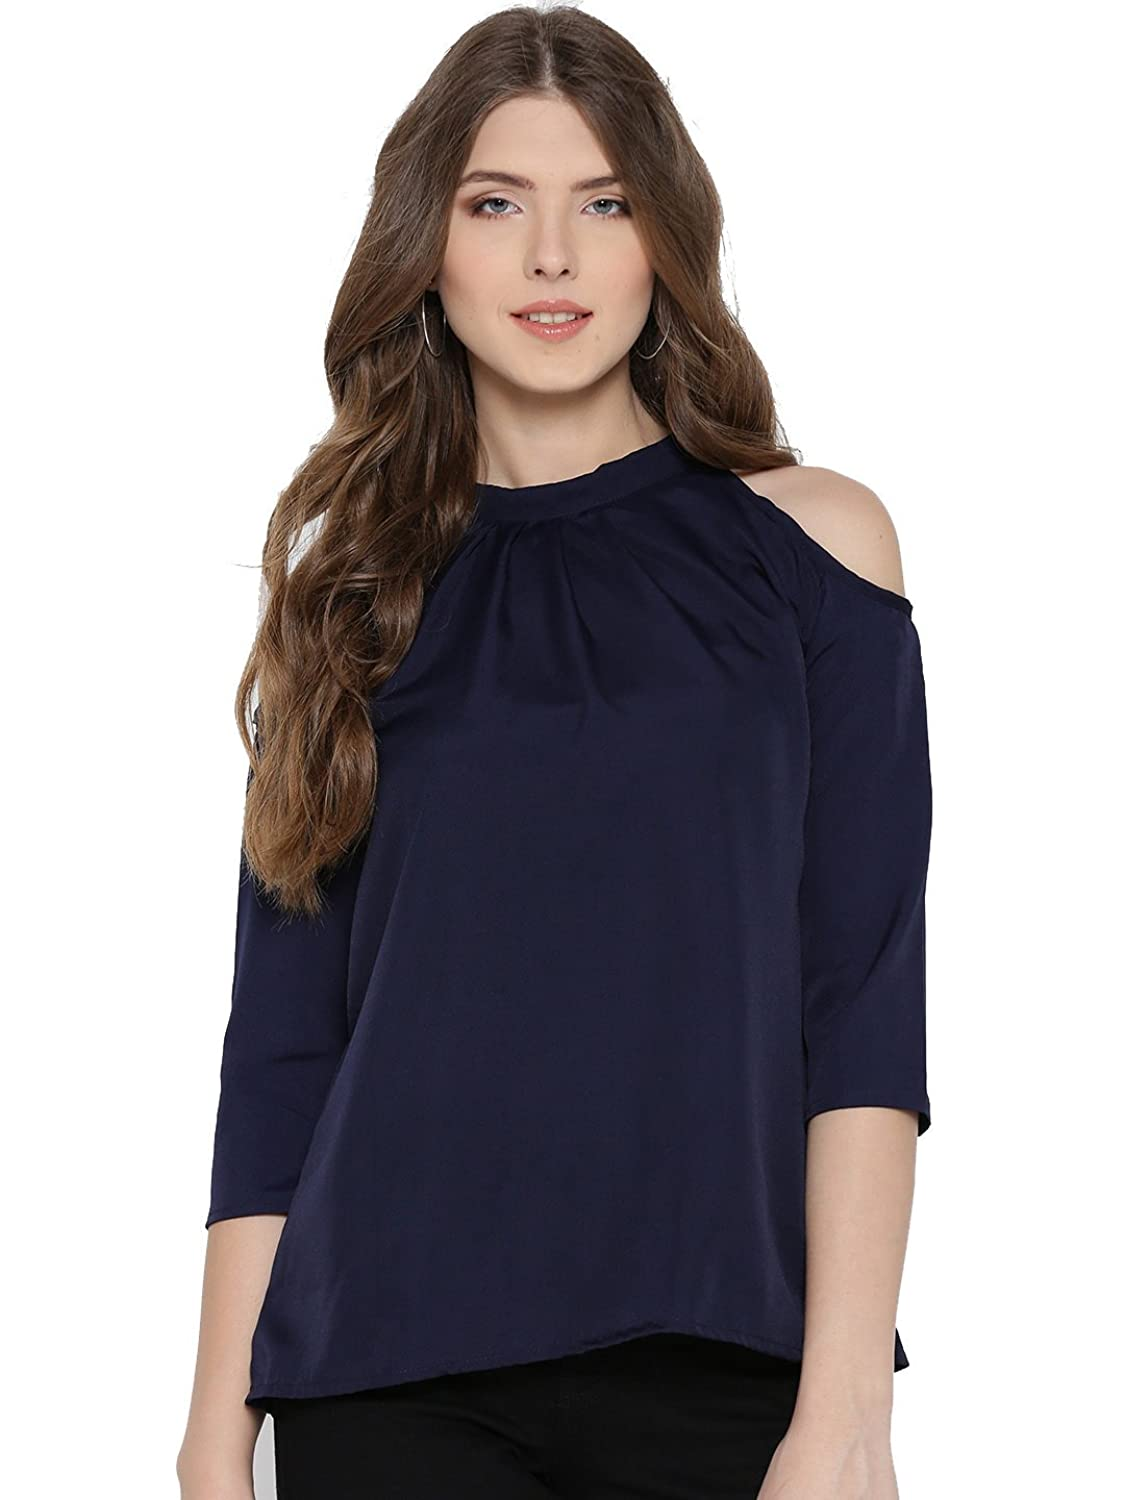 Amayr Women's Rayon Navy Blue Cold Shoulder Solid Top